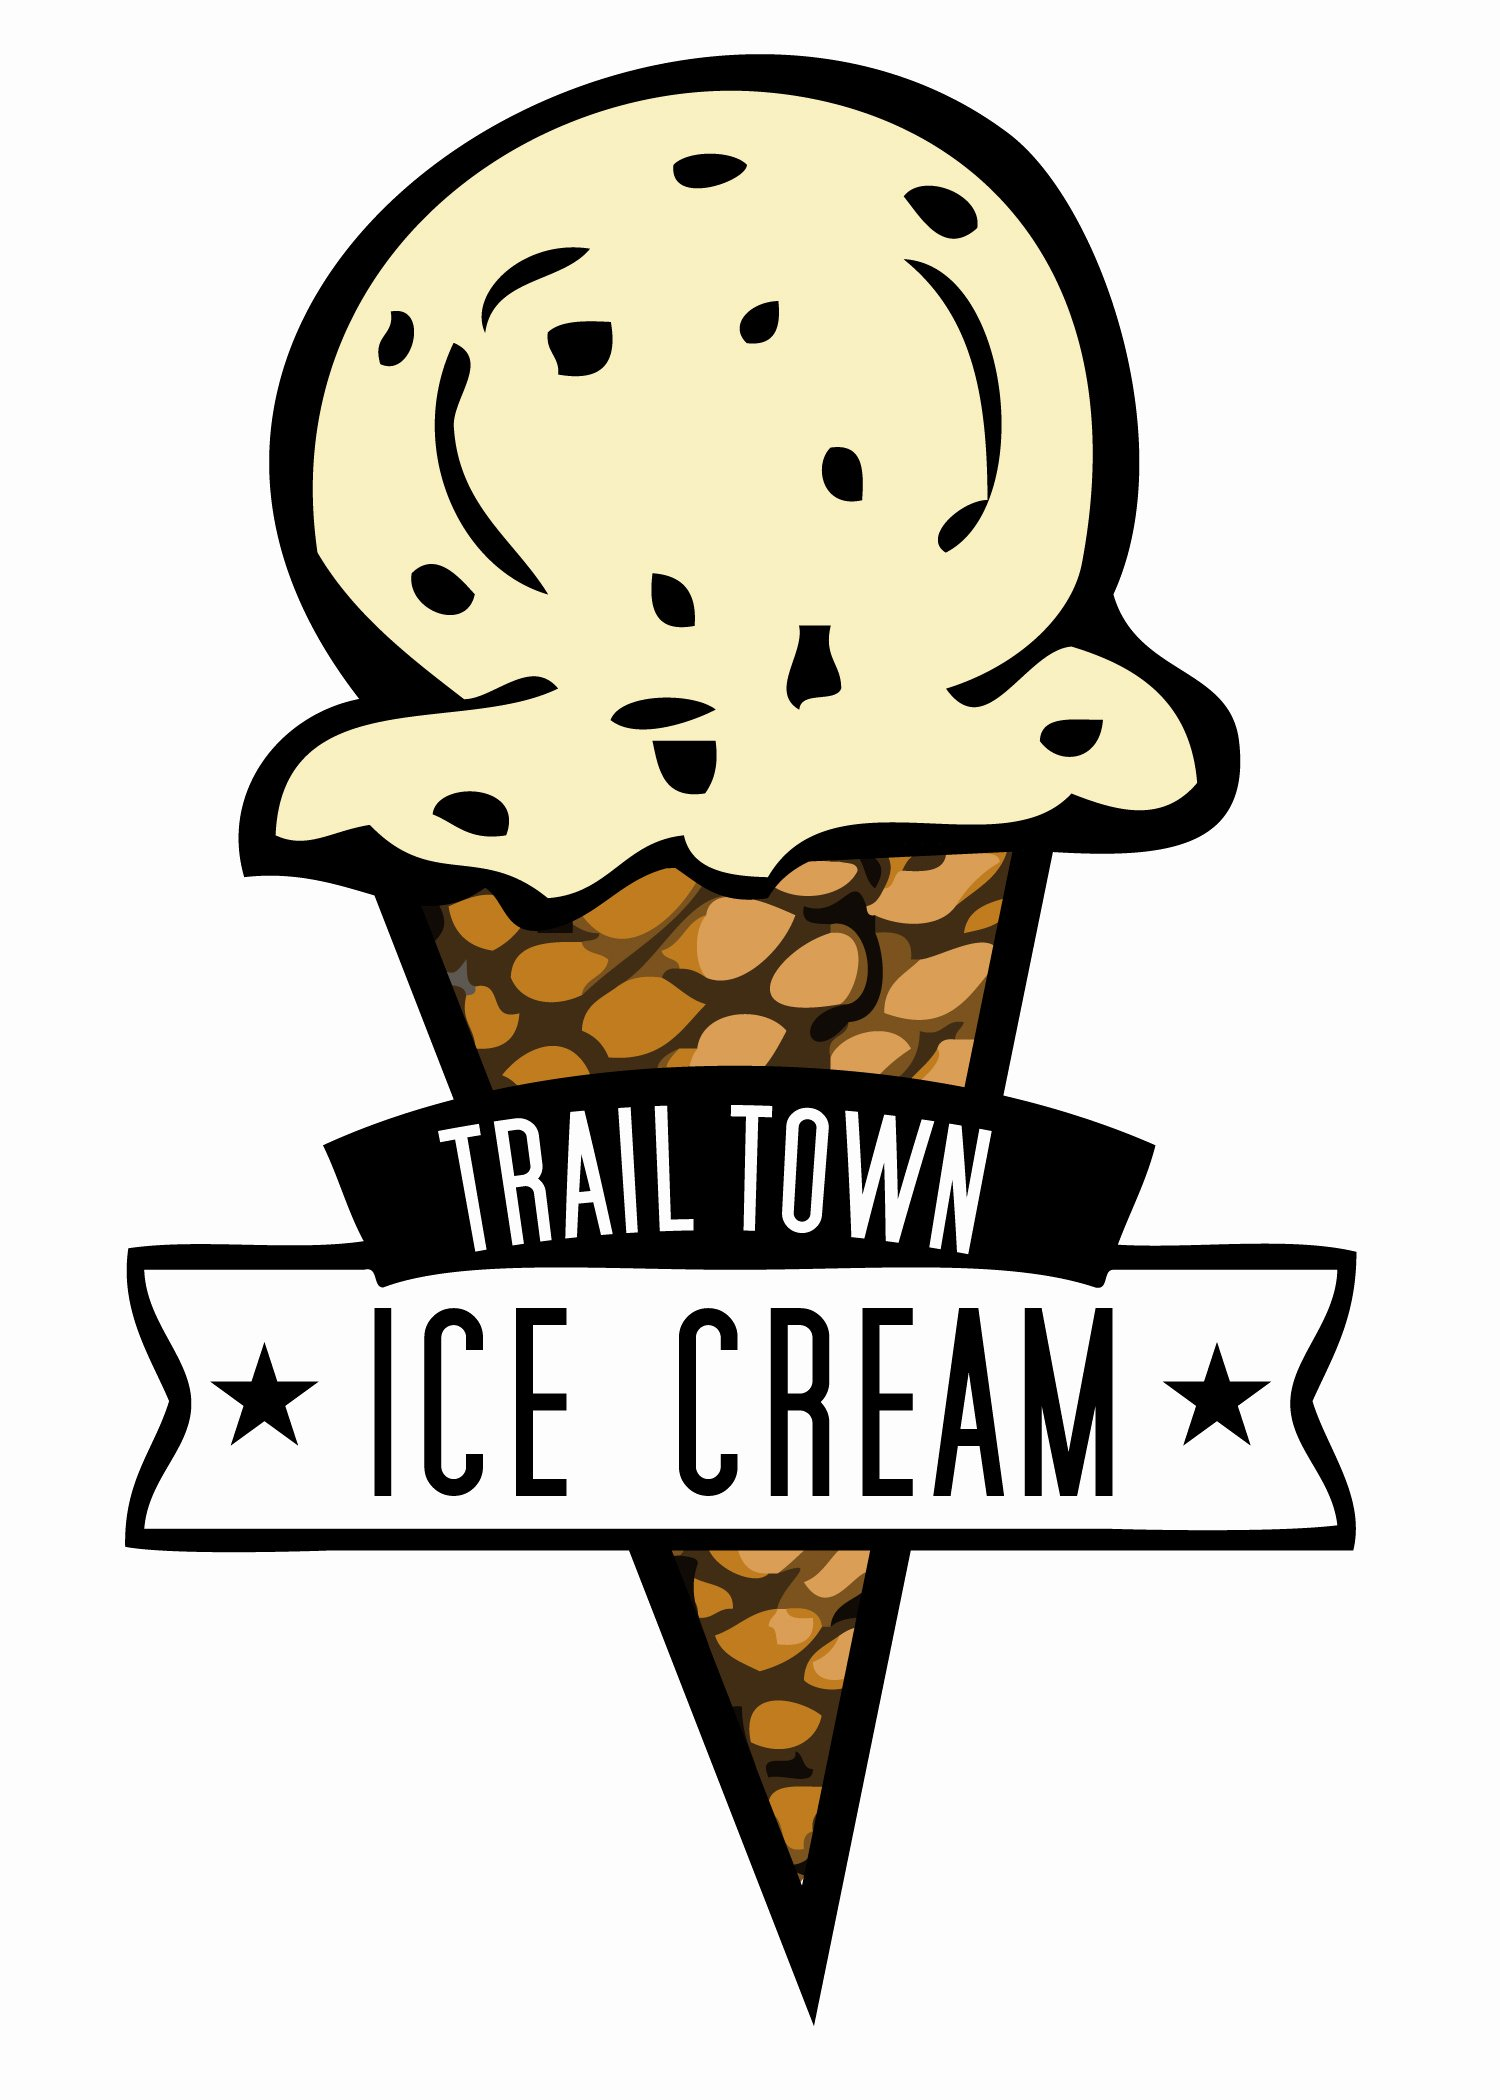 Ice Cream Restaurants Logos Best Of Trail town Ice Cream Ttoc May Update